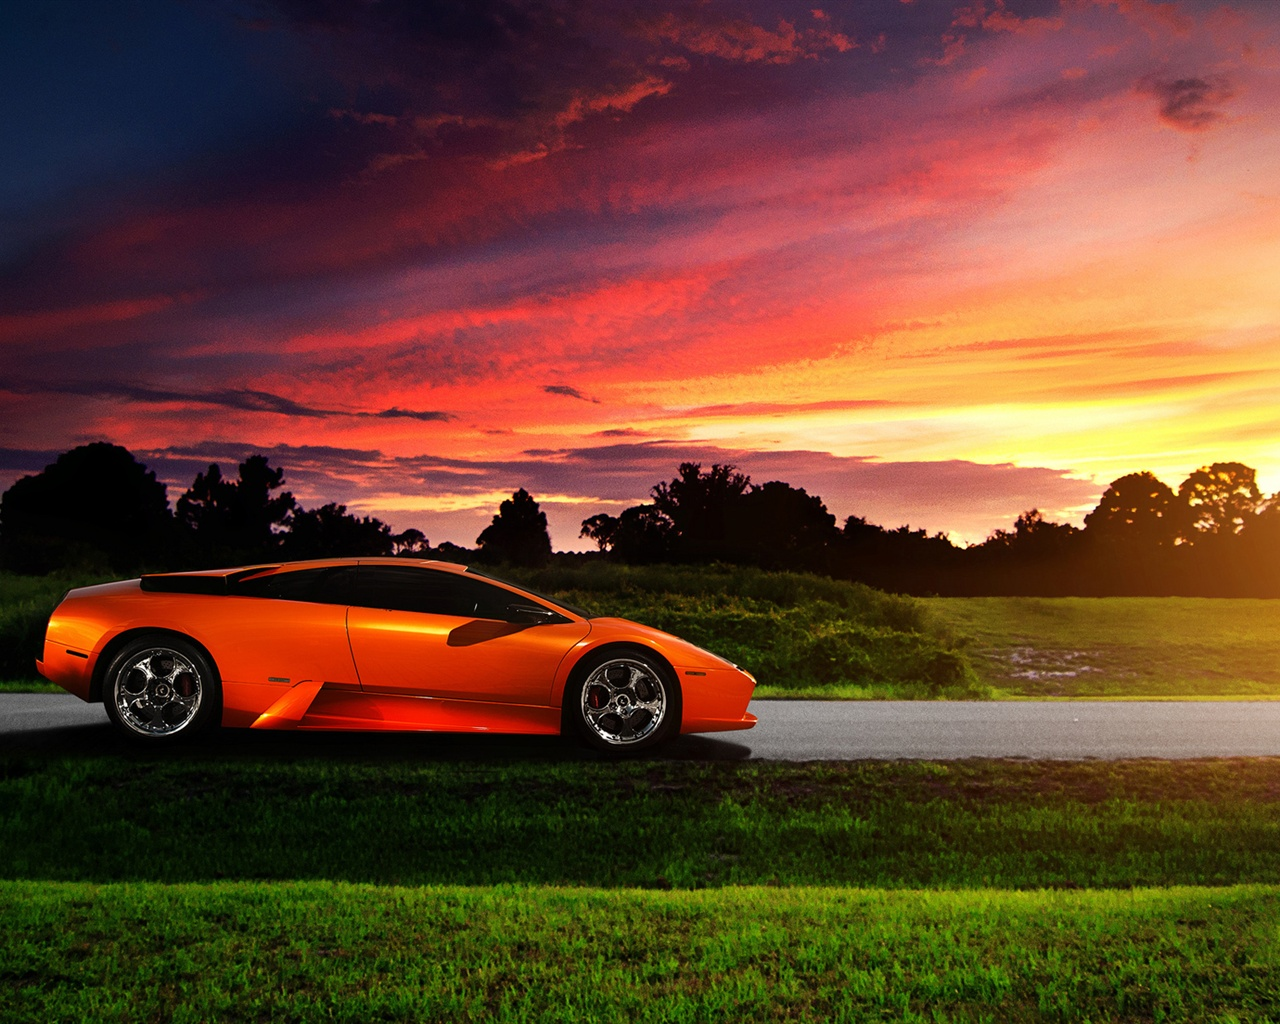 orange supercar at sunset Wallpaper 1280x1024 resolution wallpaper 1280x1024